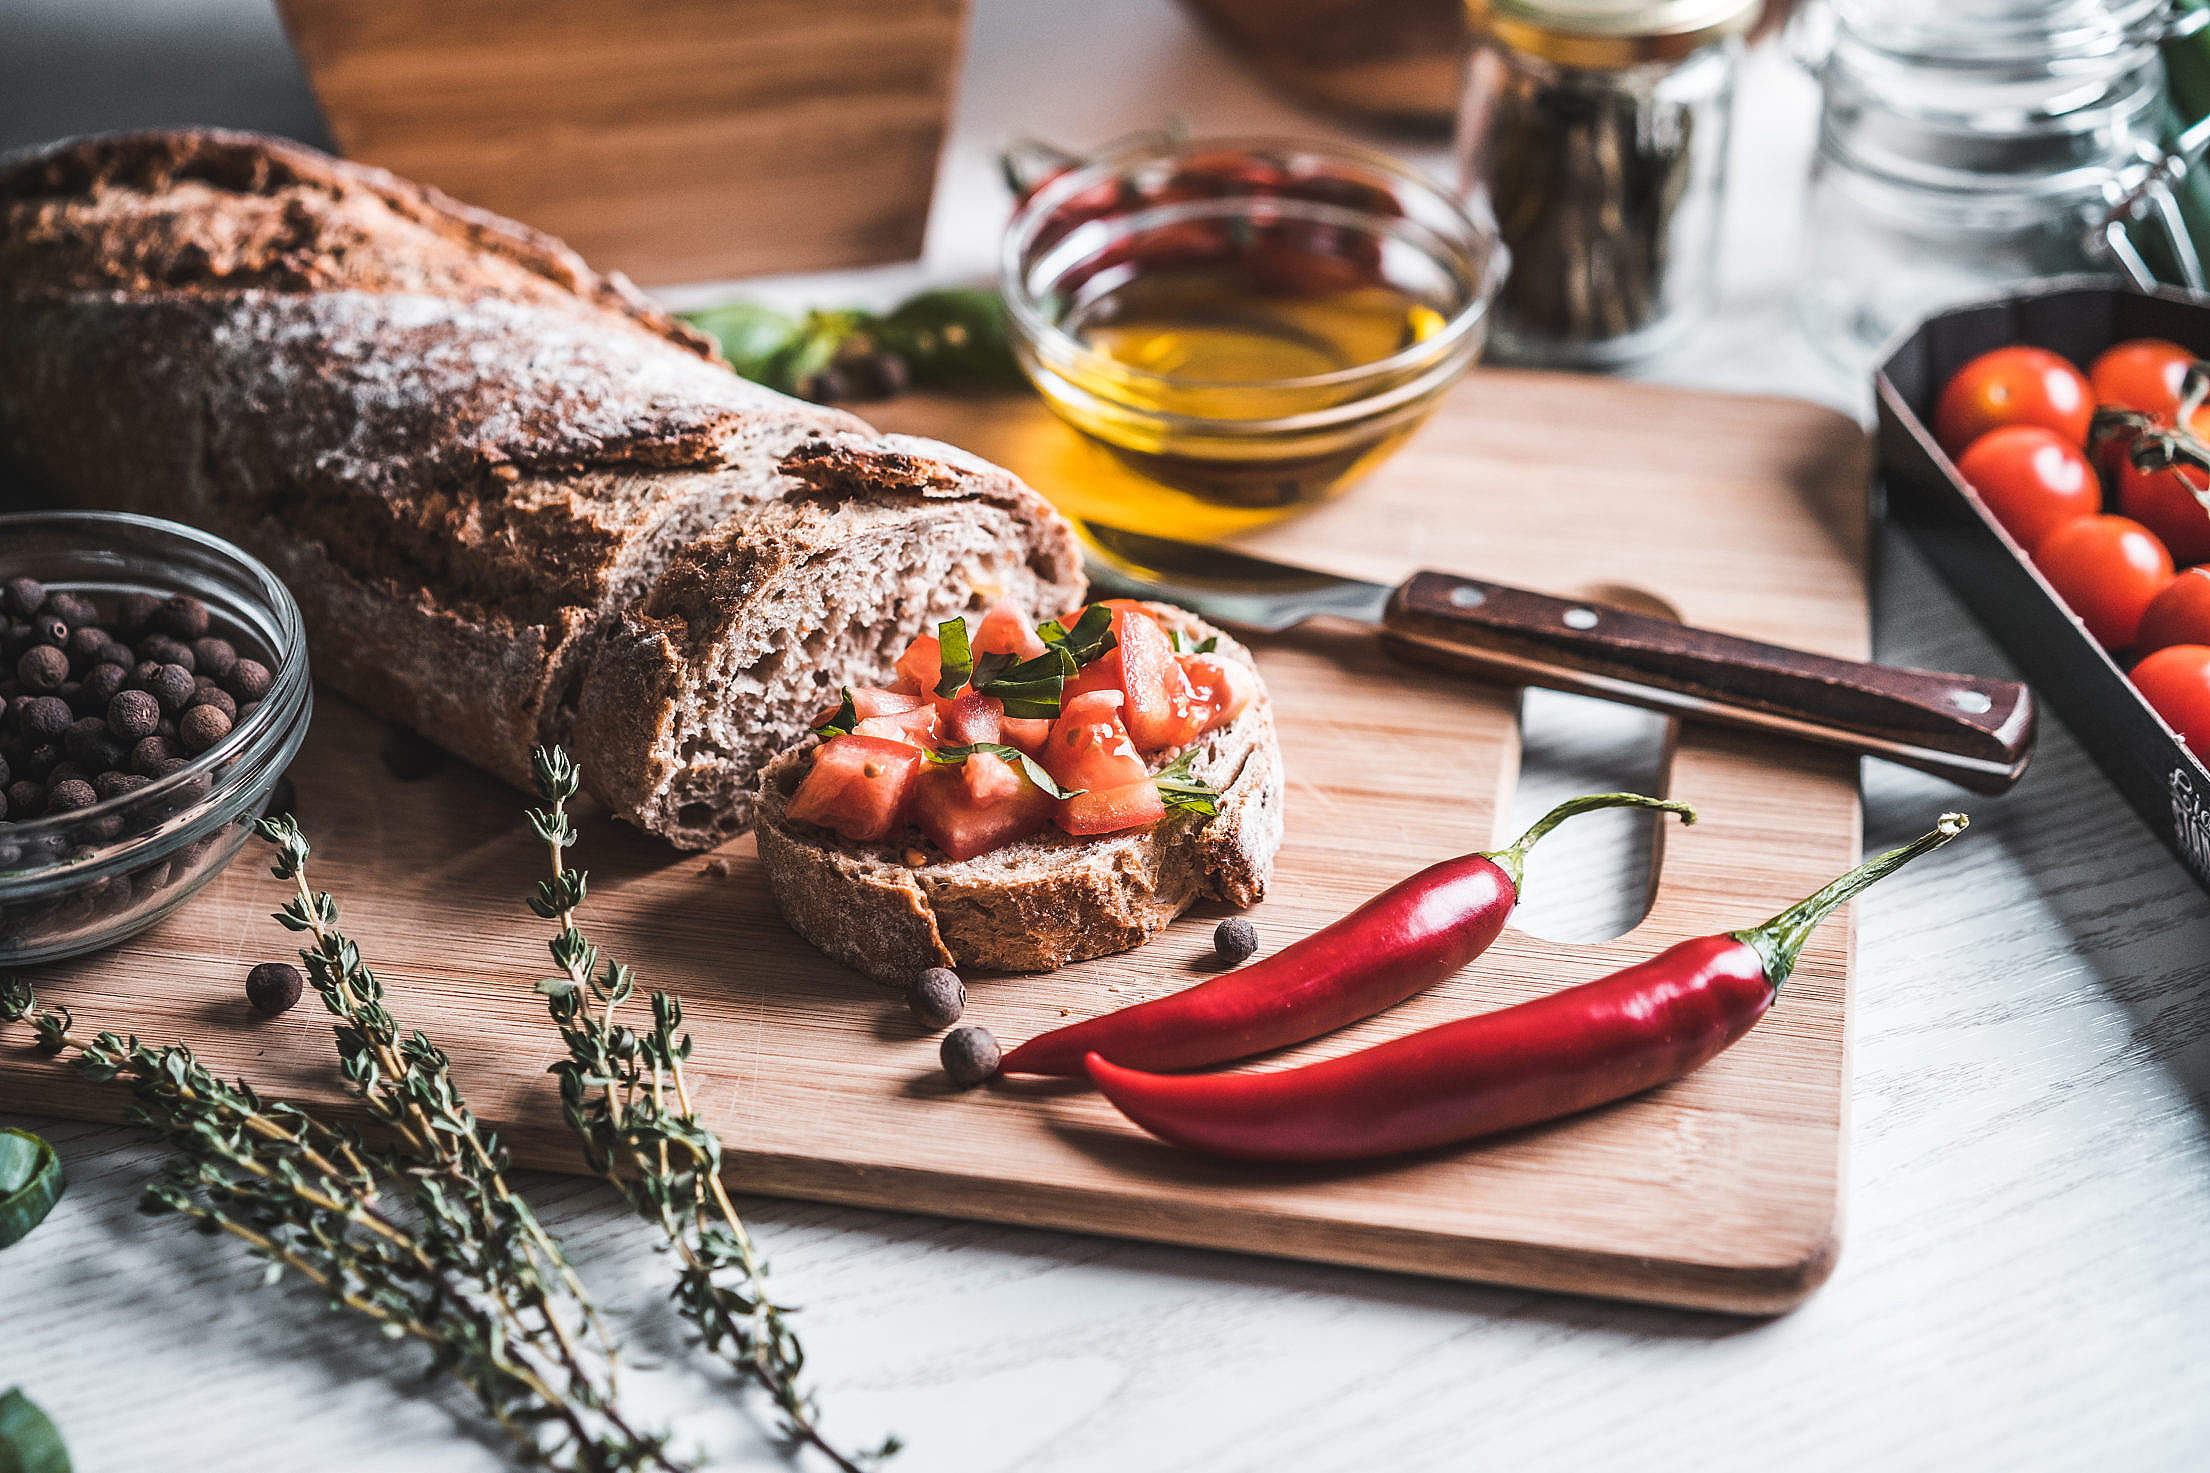 Fresh Bread with Tomato and Basil Free Stock Photo